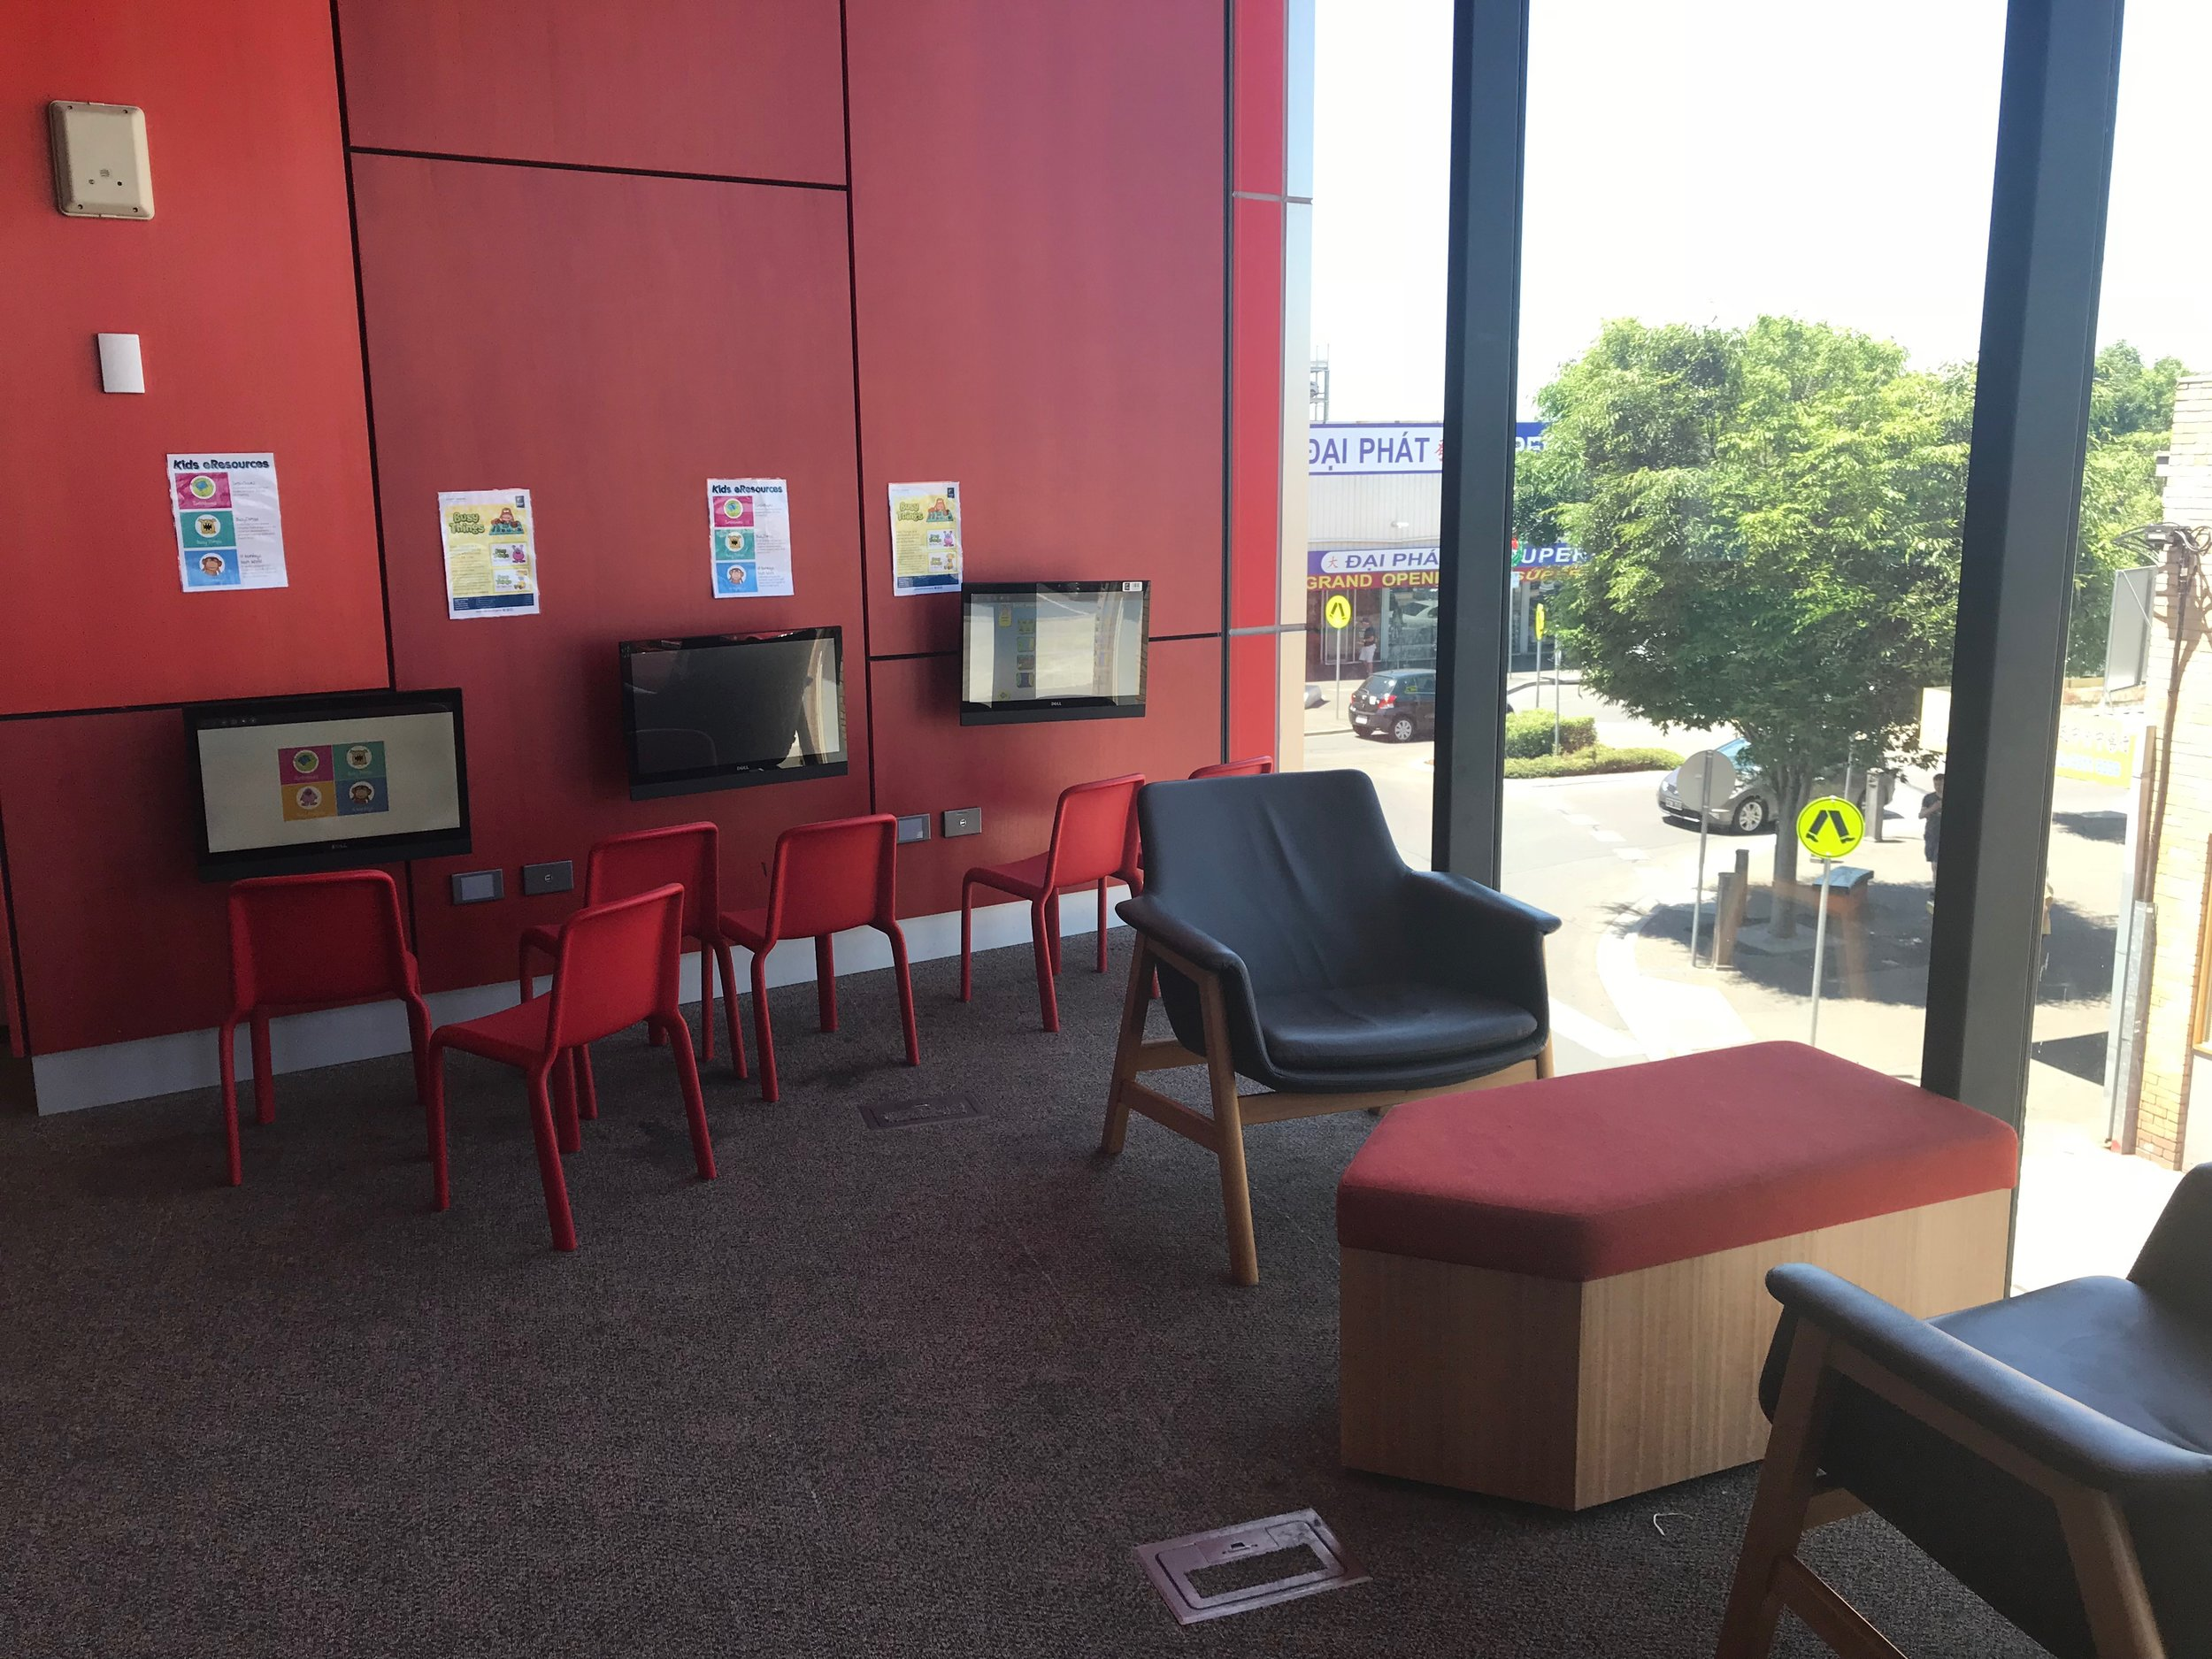 The children's area in the library includes children's computers, seating areas and an area for story time events.